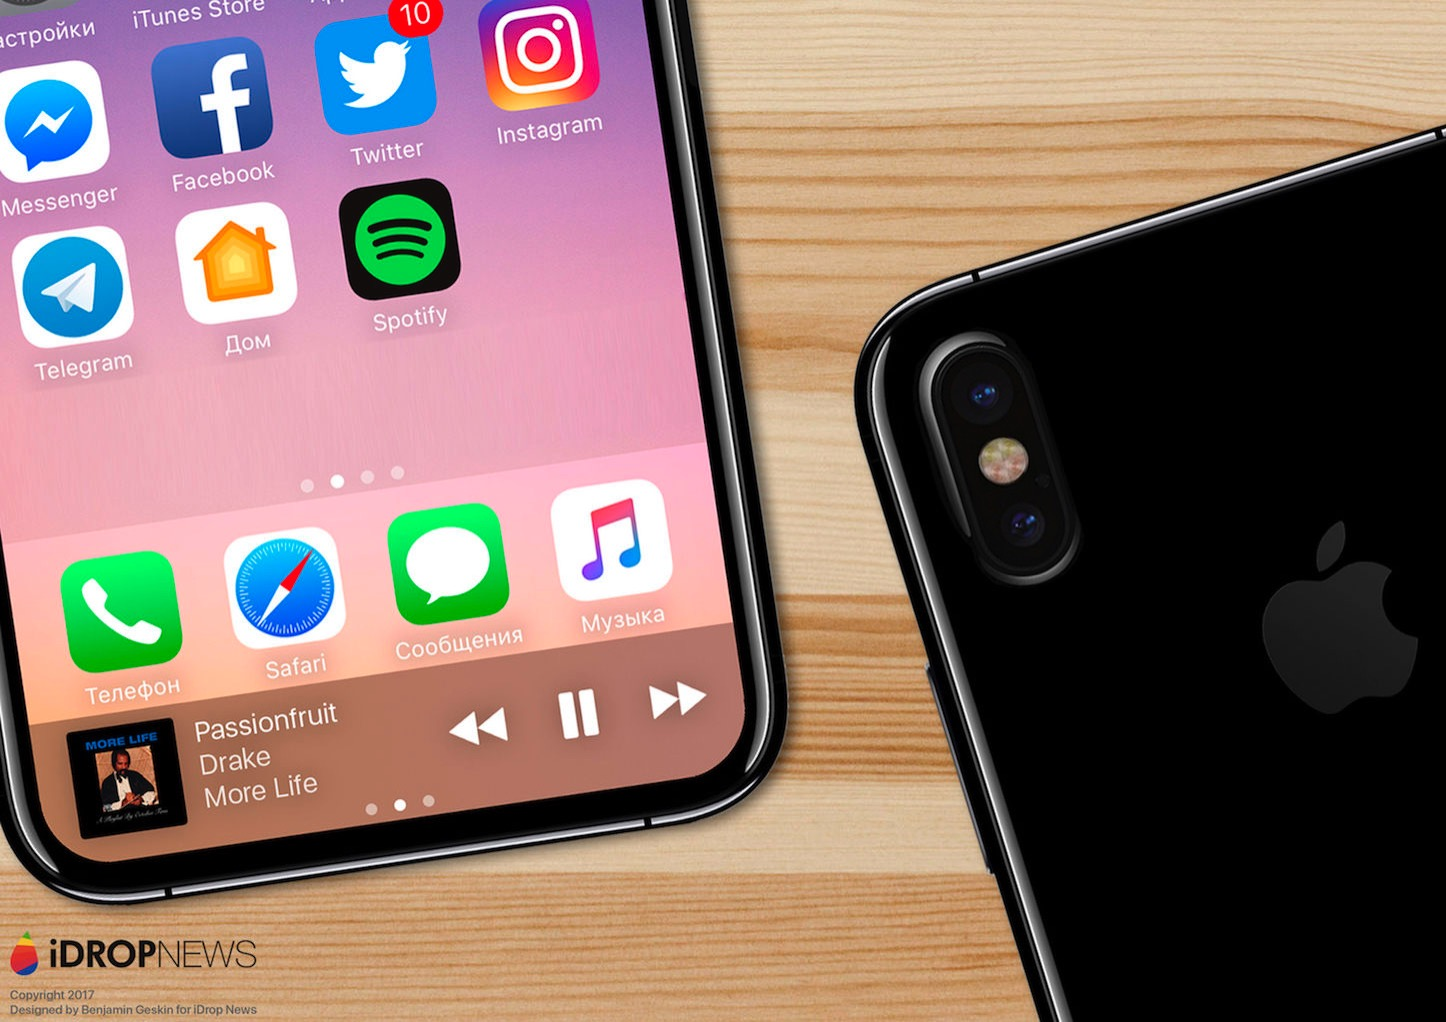 IDrop News Exclusive iPhone 8 Image